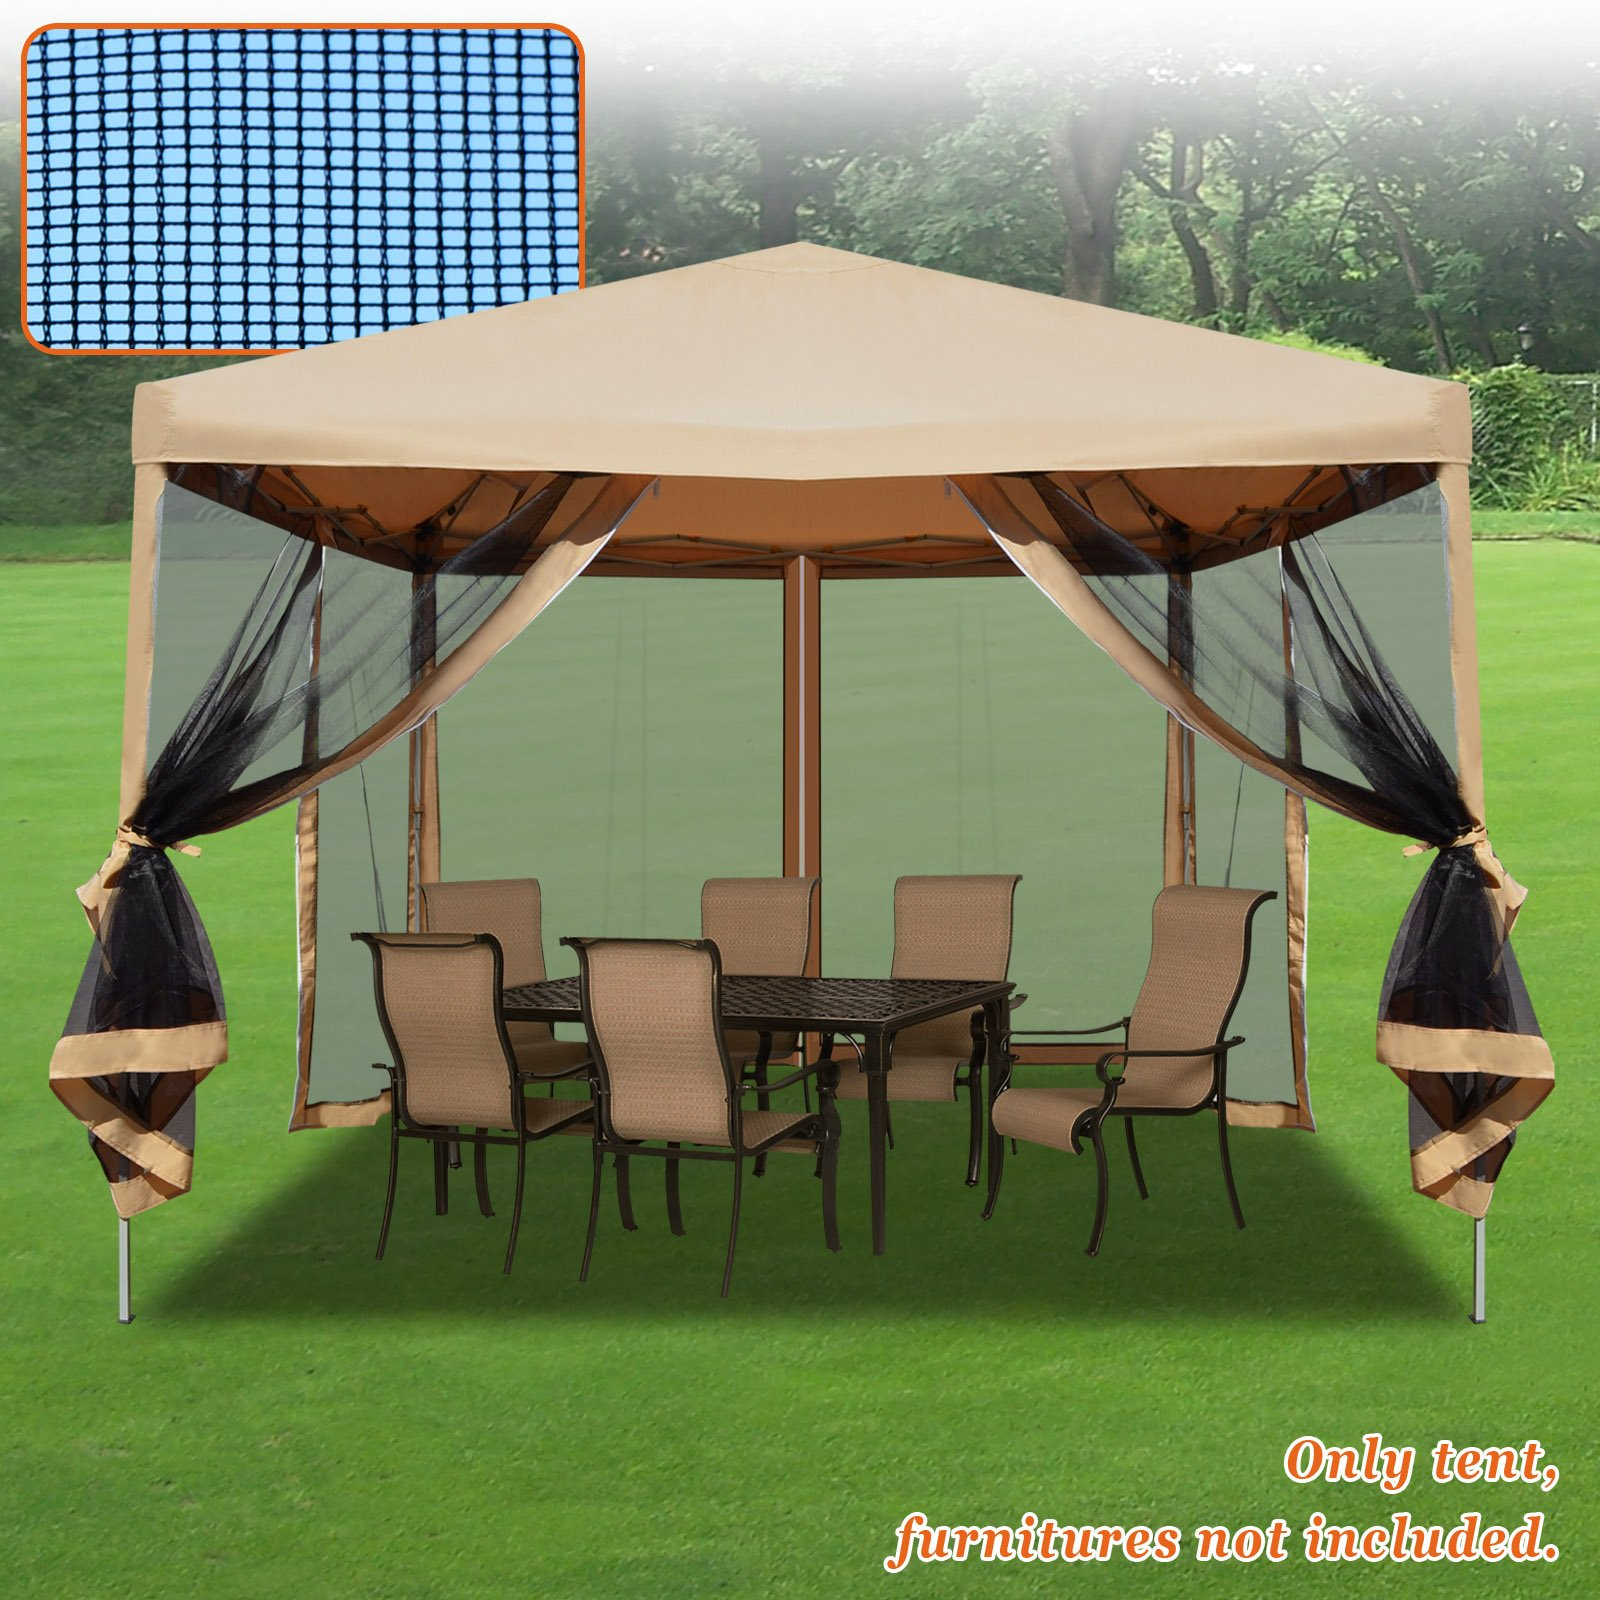 Strong Camel Easy Pop Up Canopy Tent 10-Feet x 10-Feet Gazebo with Mesh Side Walls (Beige) by Strong Camel